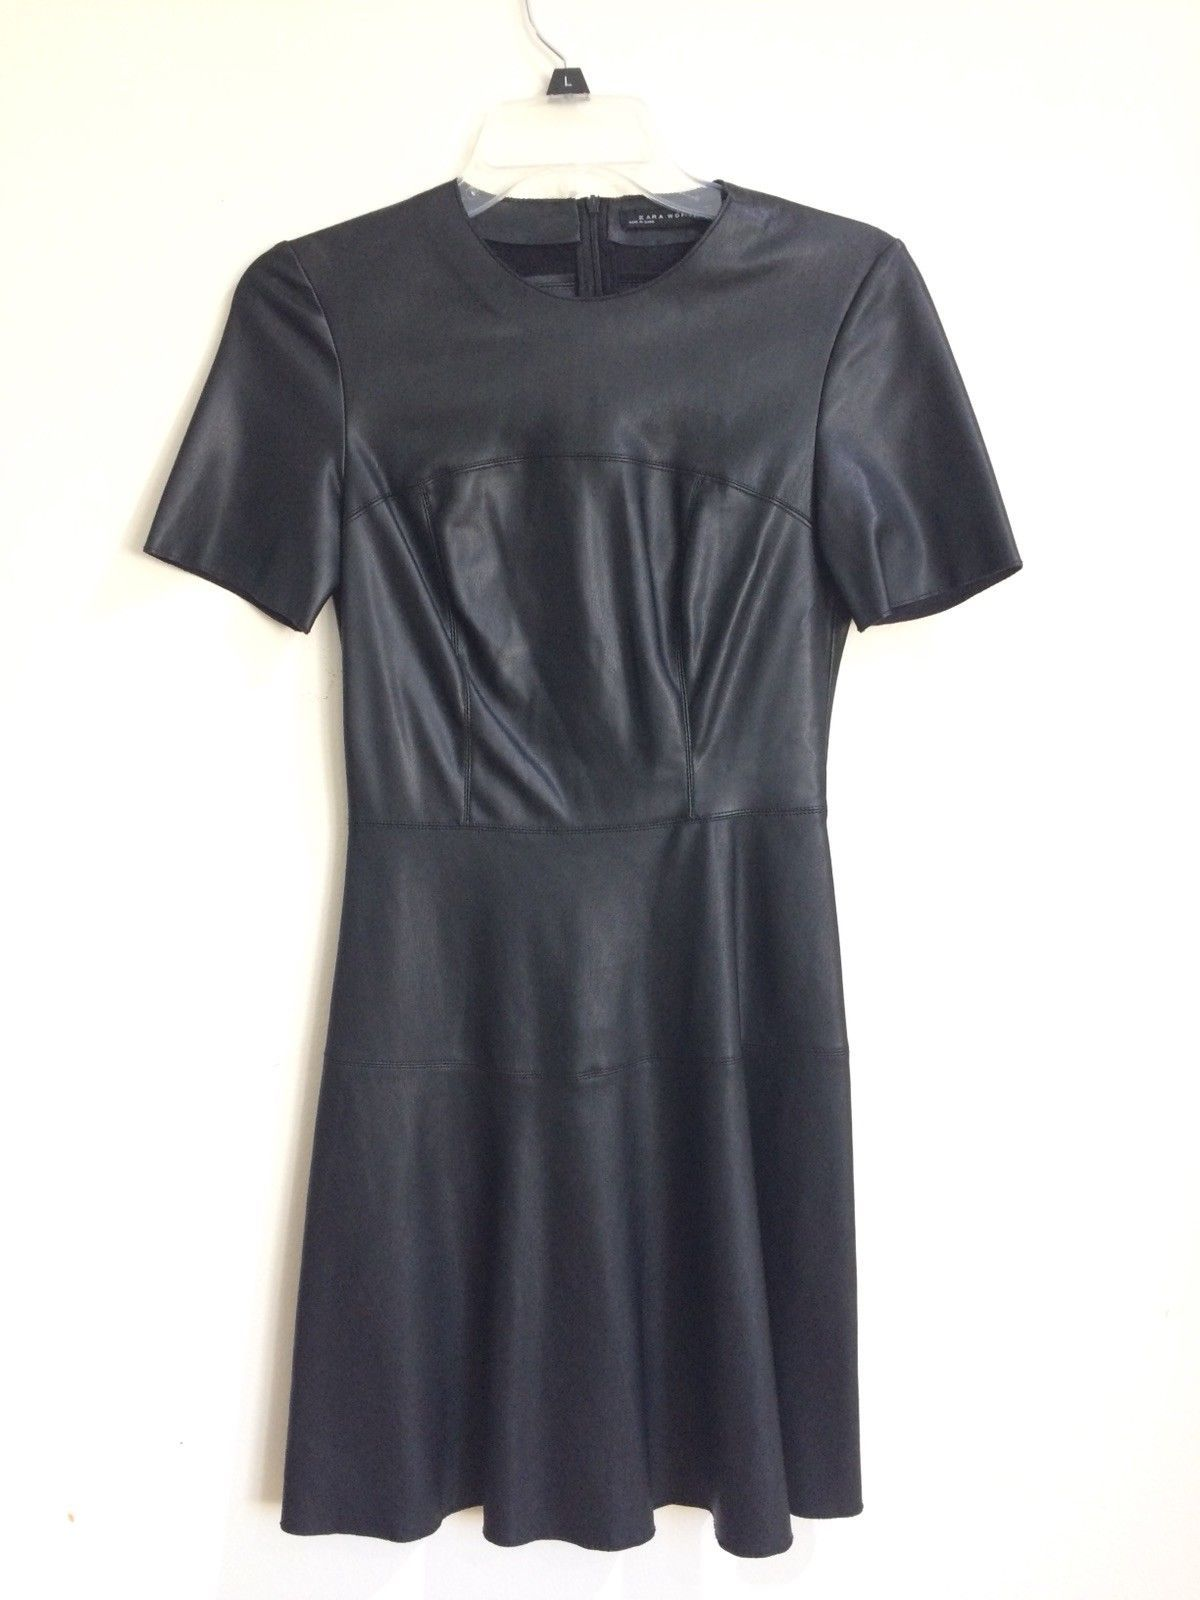 9e1e30dc 33.00 | Womens Zara Faux Leather Dress Size Xs ❤ #womens #leather  #OutfitIdeas #clothes #bargain #Aesthetic #Fall #jewelry #Ideen #Casual  #boho #Portfolio ...